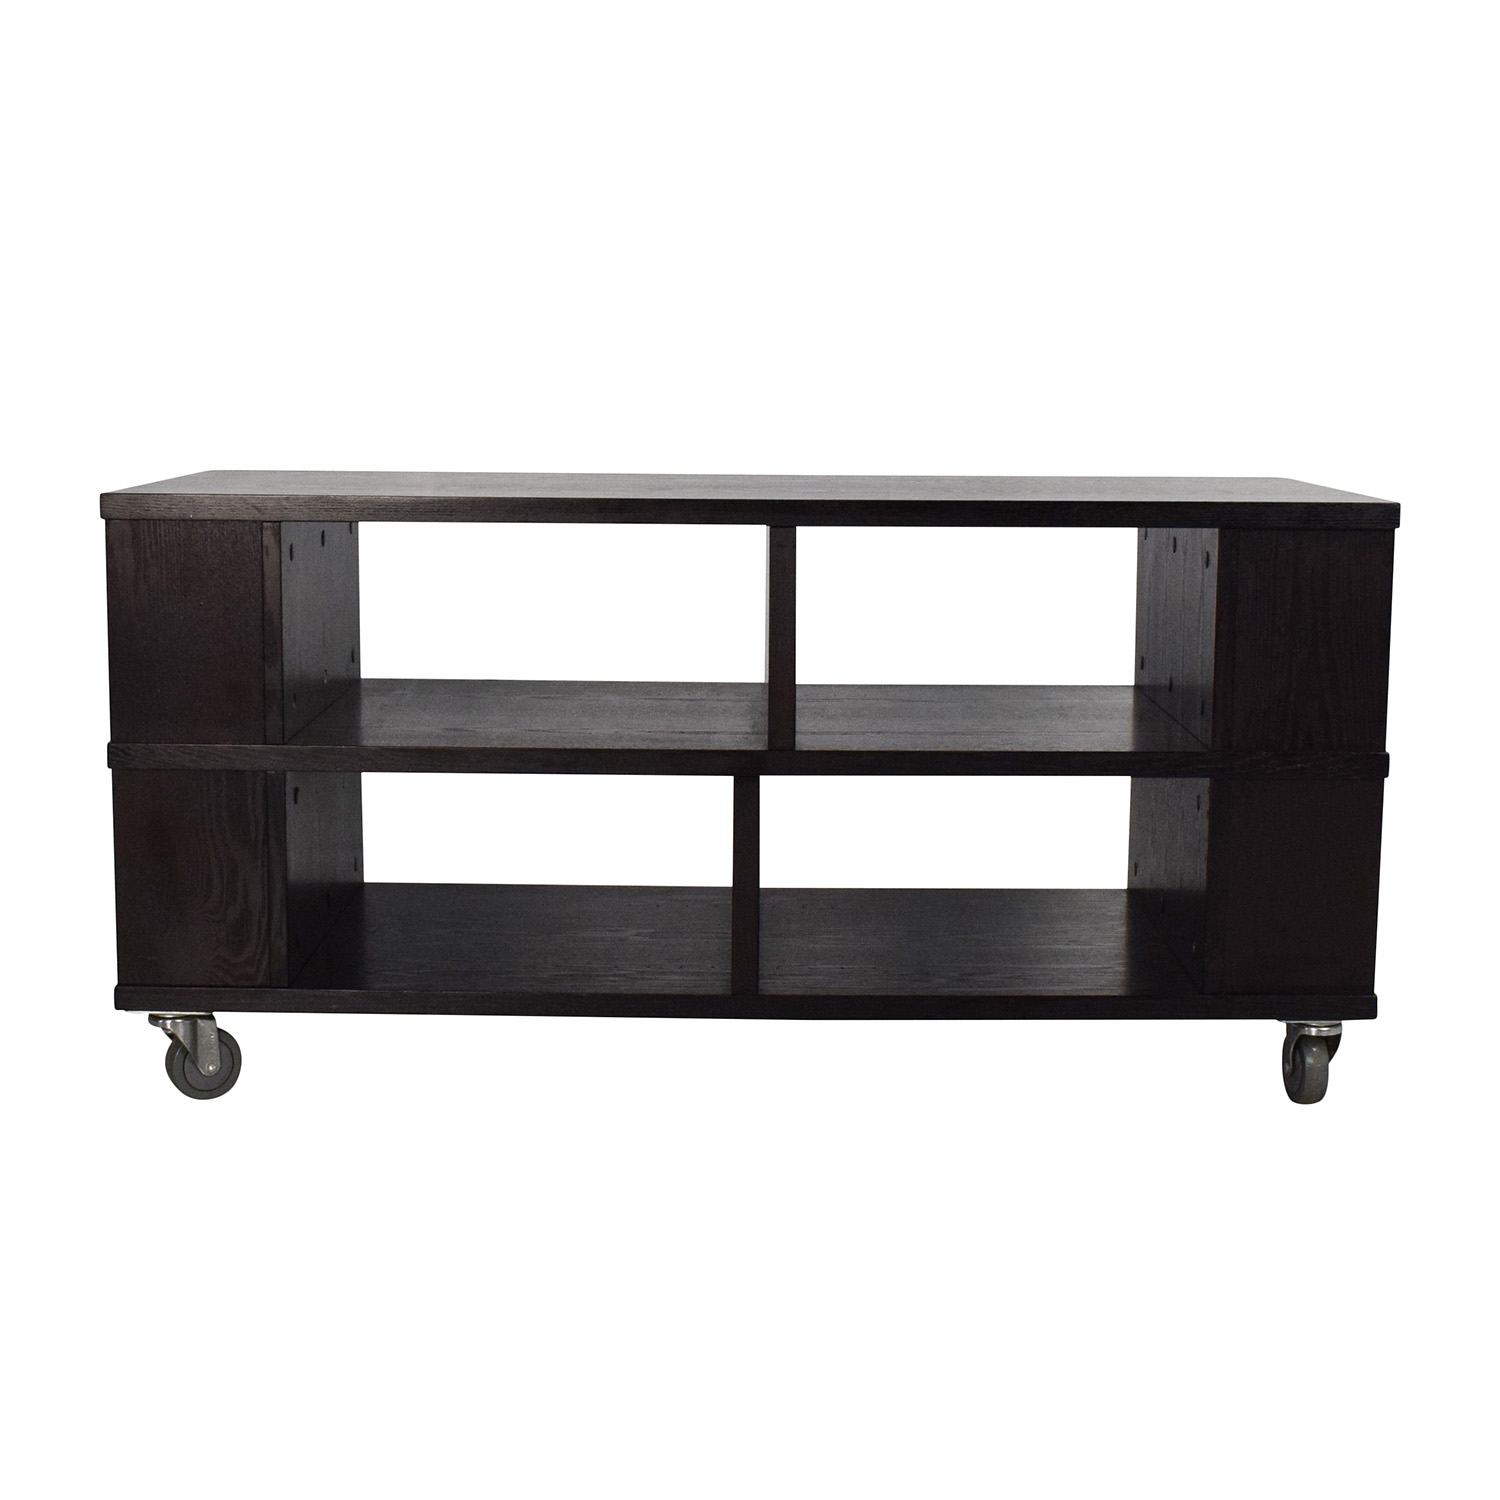 Crate & Barrel Elements Media Cart Console sale